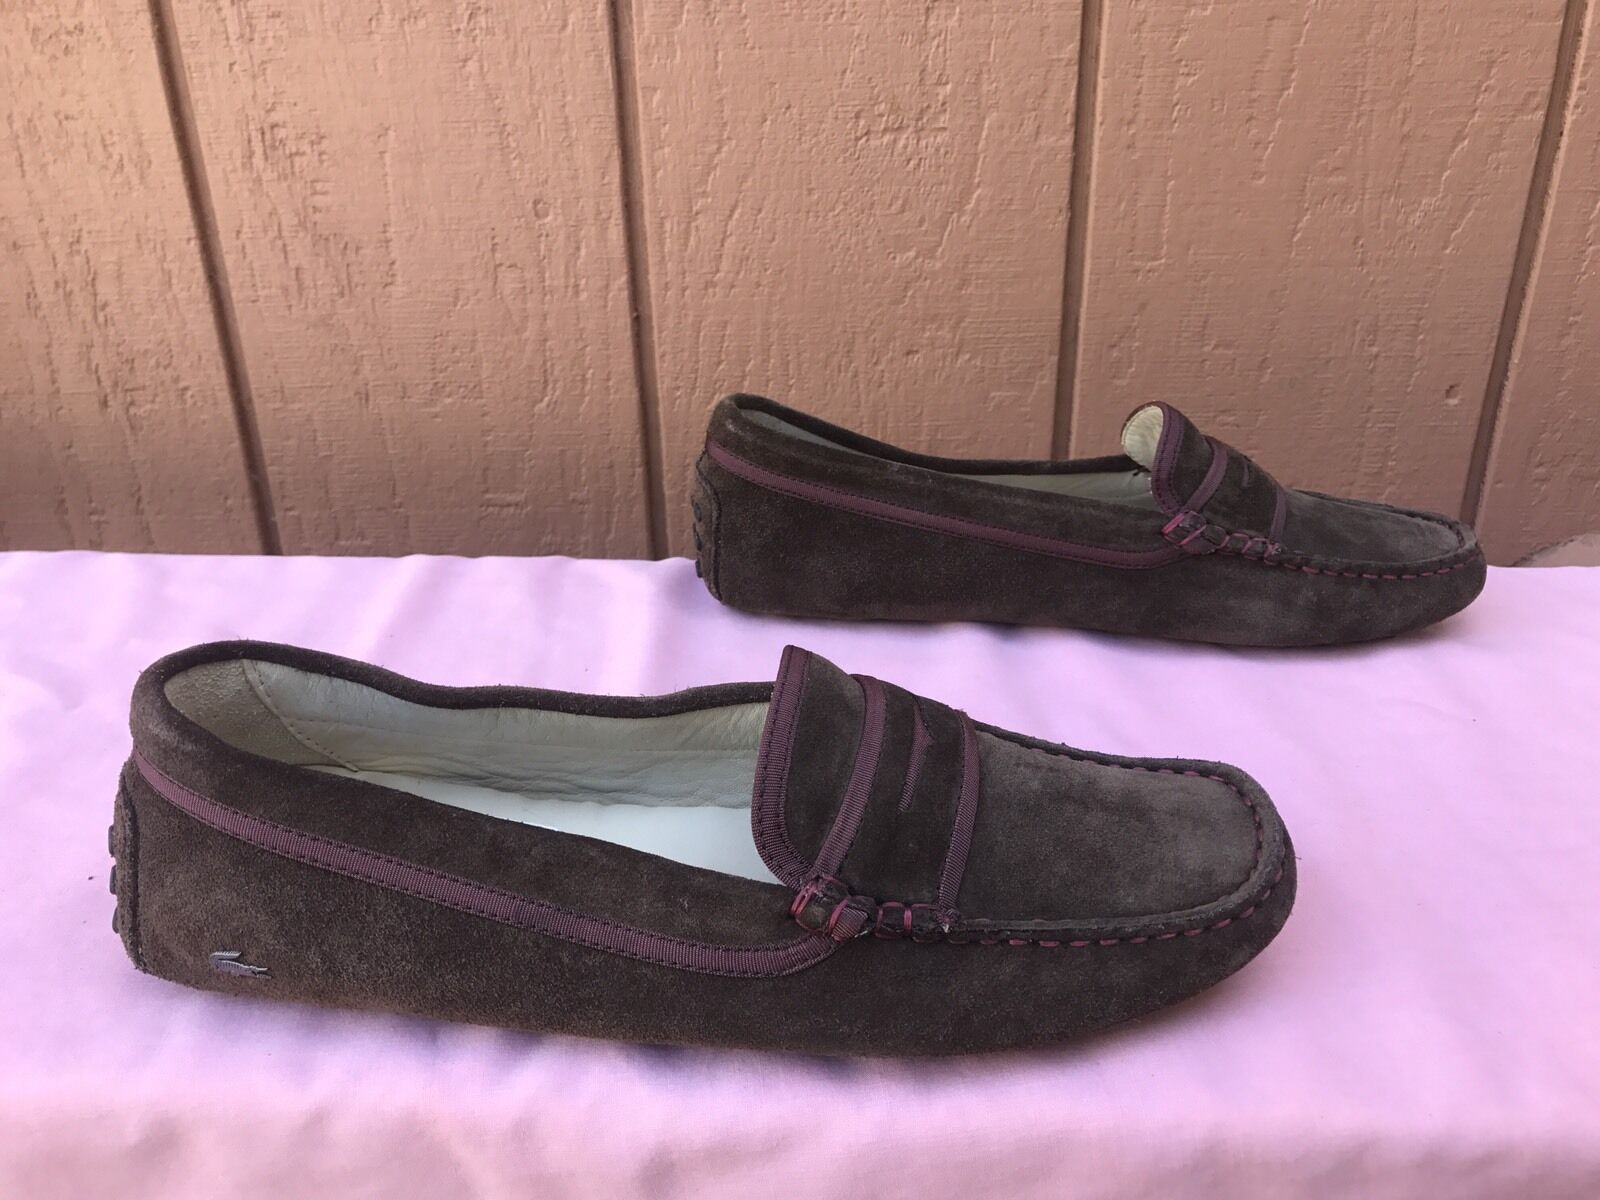 933c503bd2a0 ... MINT femmes Lacoste Loafers Concours 3 Clw Clw Clw Suede Moccasins  marron US 8.5 EUR 40 ...